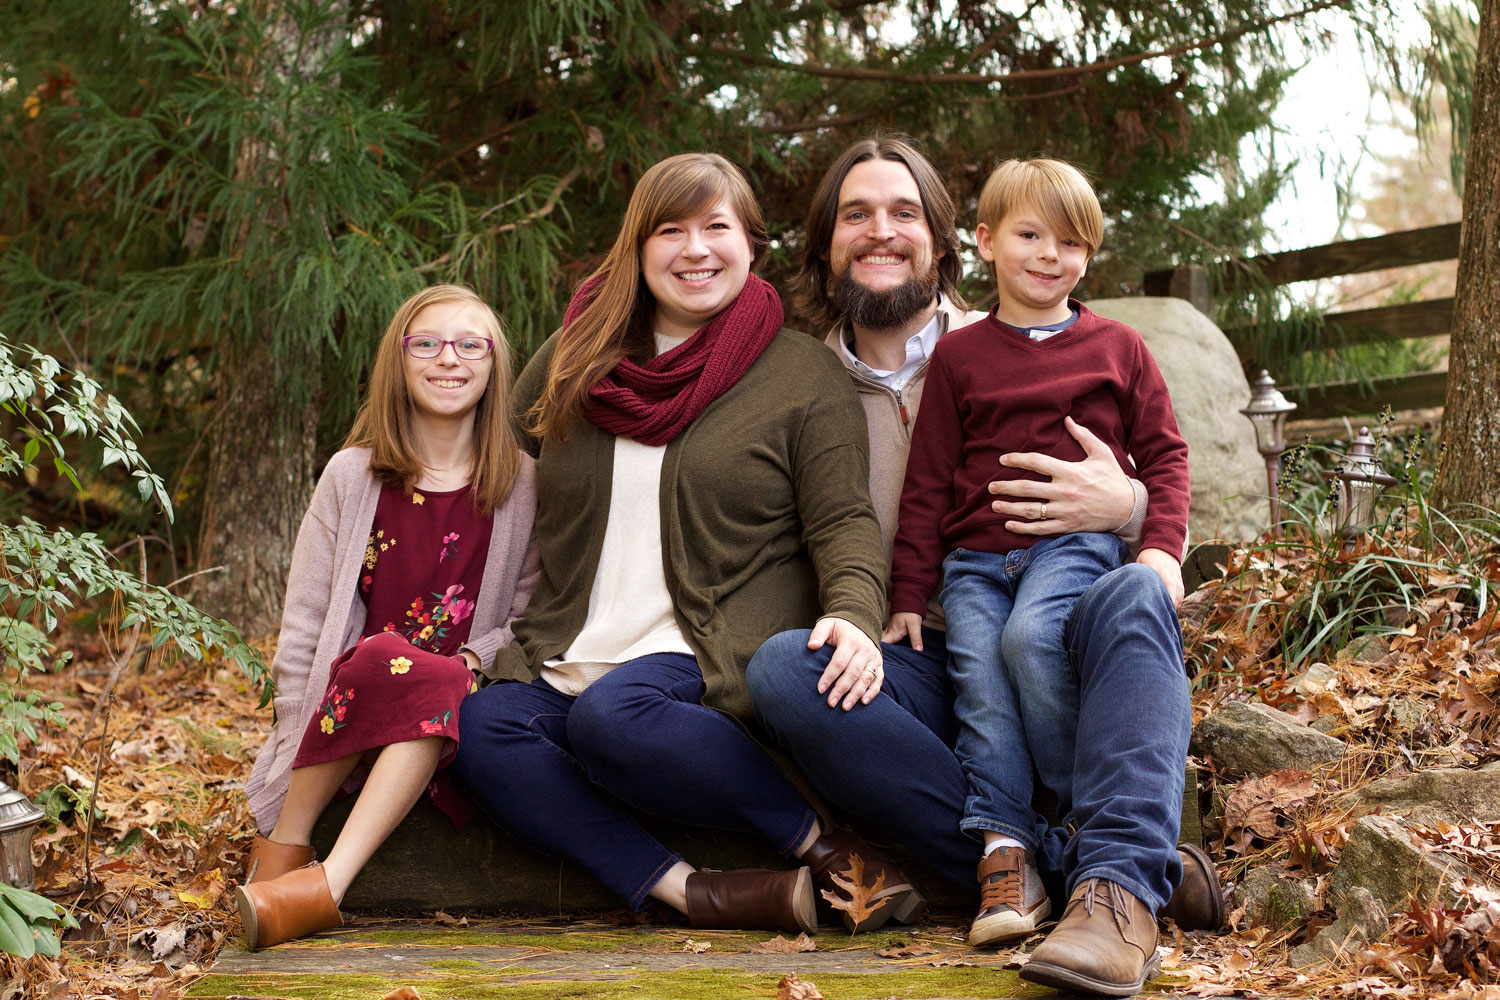 Photo of Erik, his wife, and two kids sitting outside